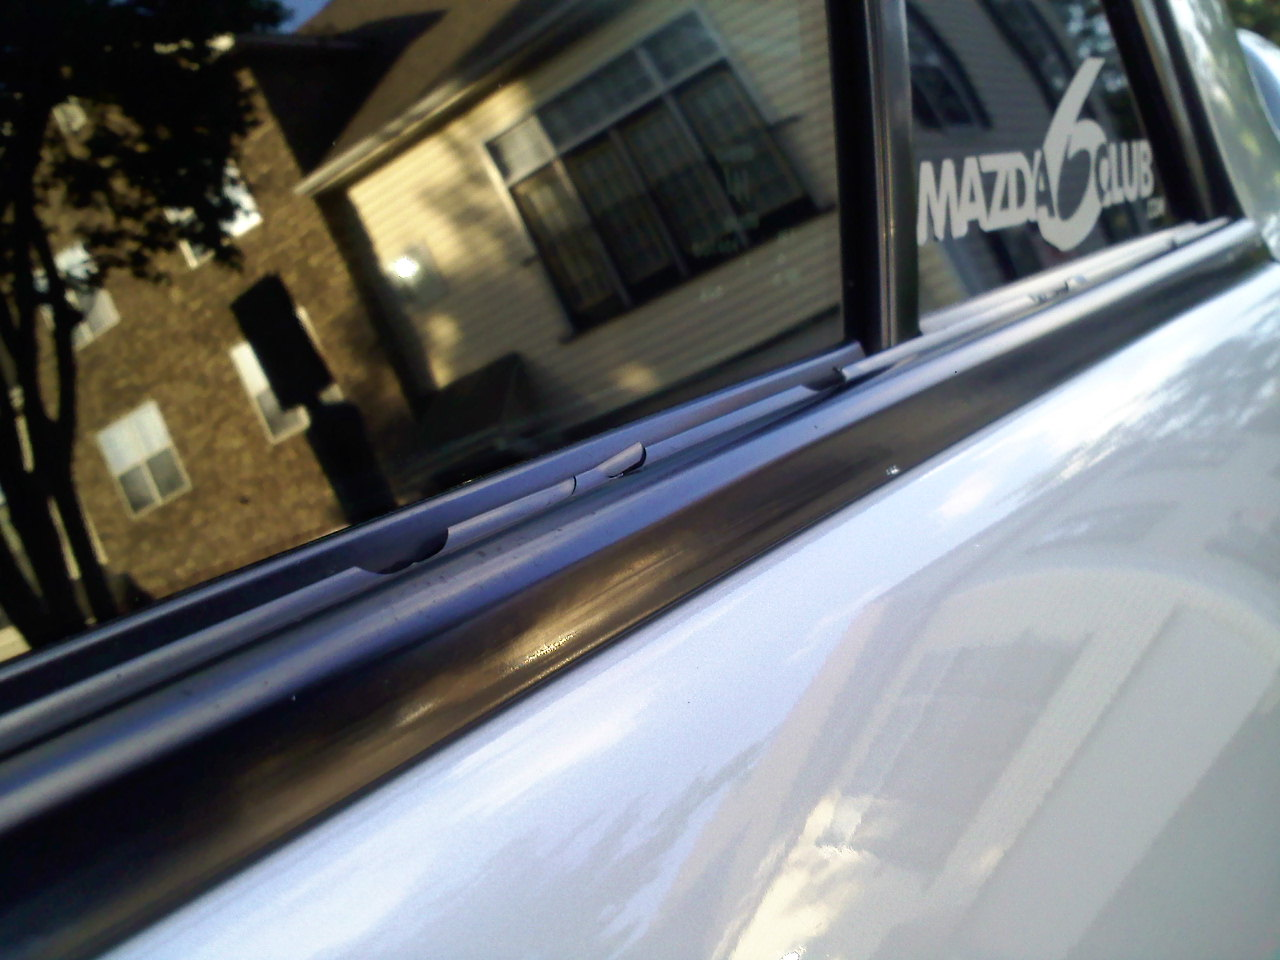 Window Trim Replacement Mazda 6 Forums Mazda 6 Forum